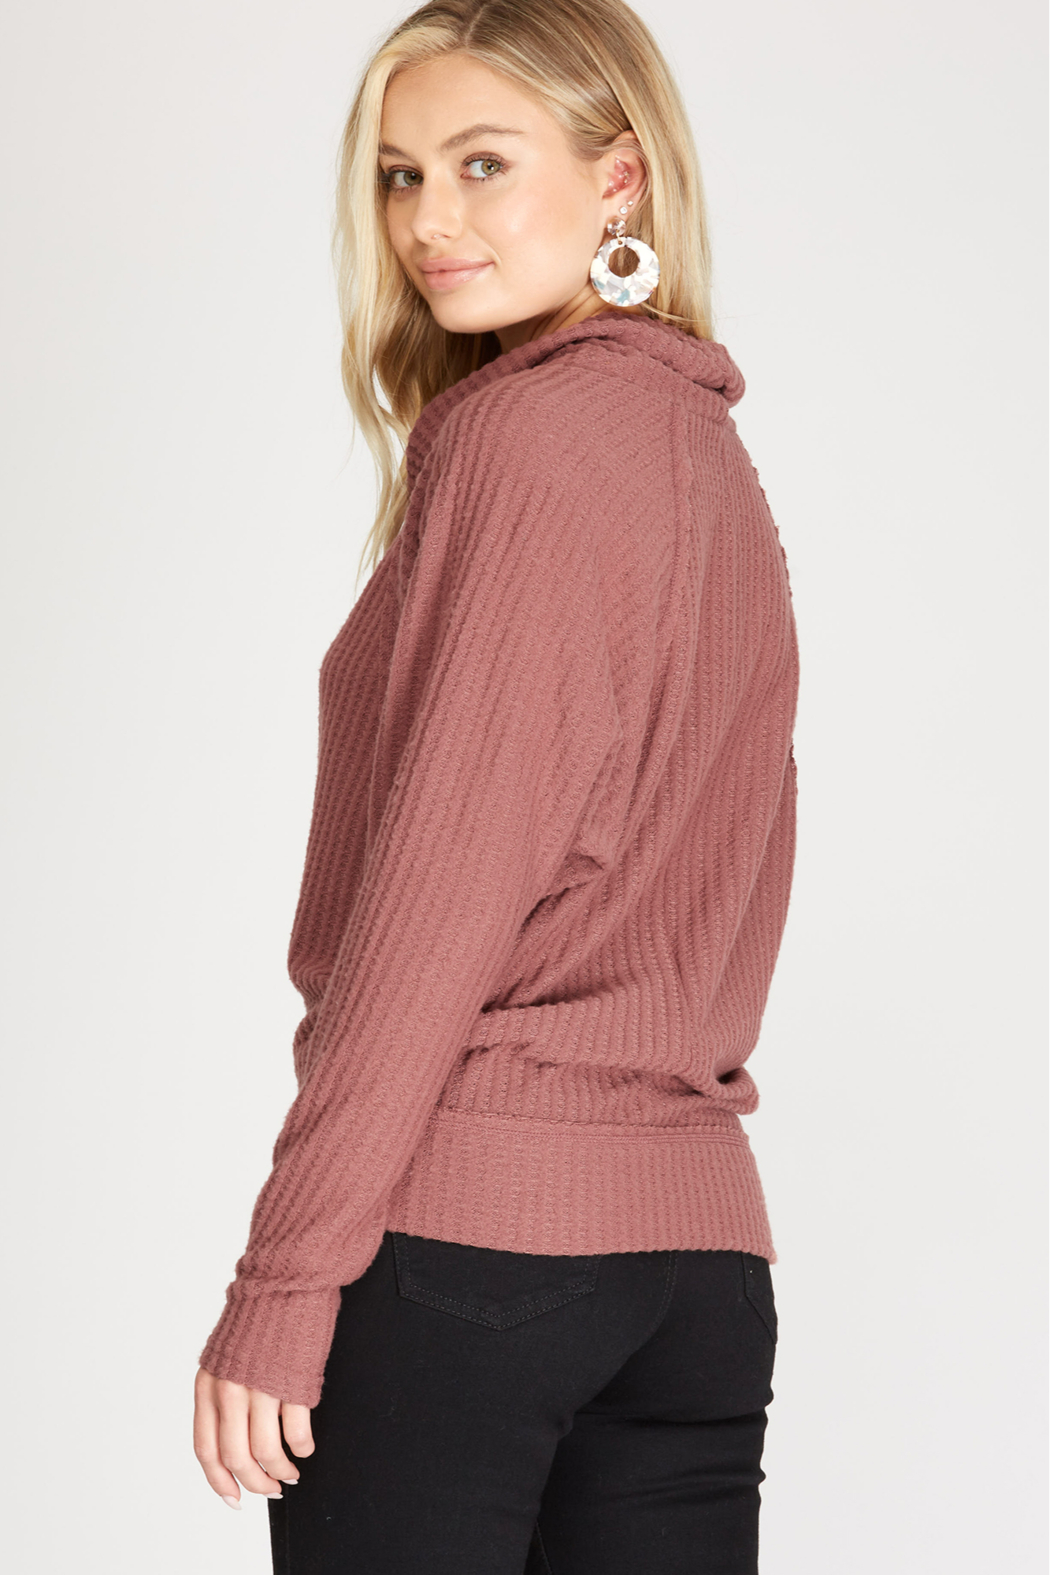 She and Sky LONG SLEEVE BRUSHED THERMAL KNIT TOP - Main Image